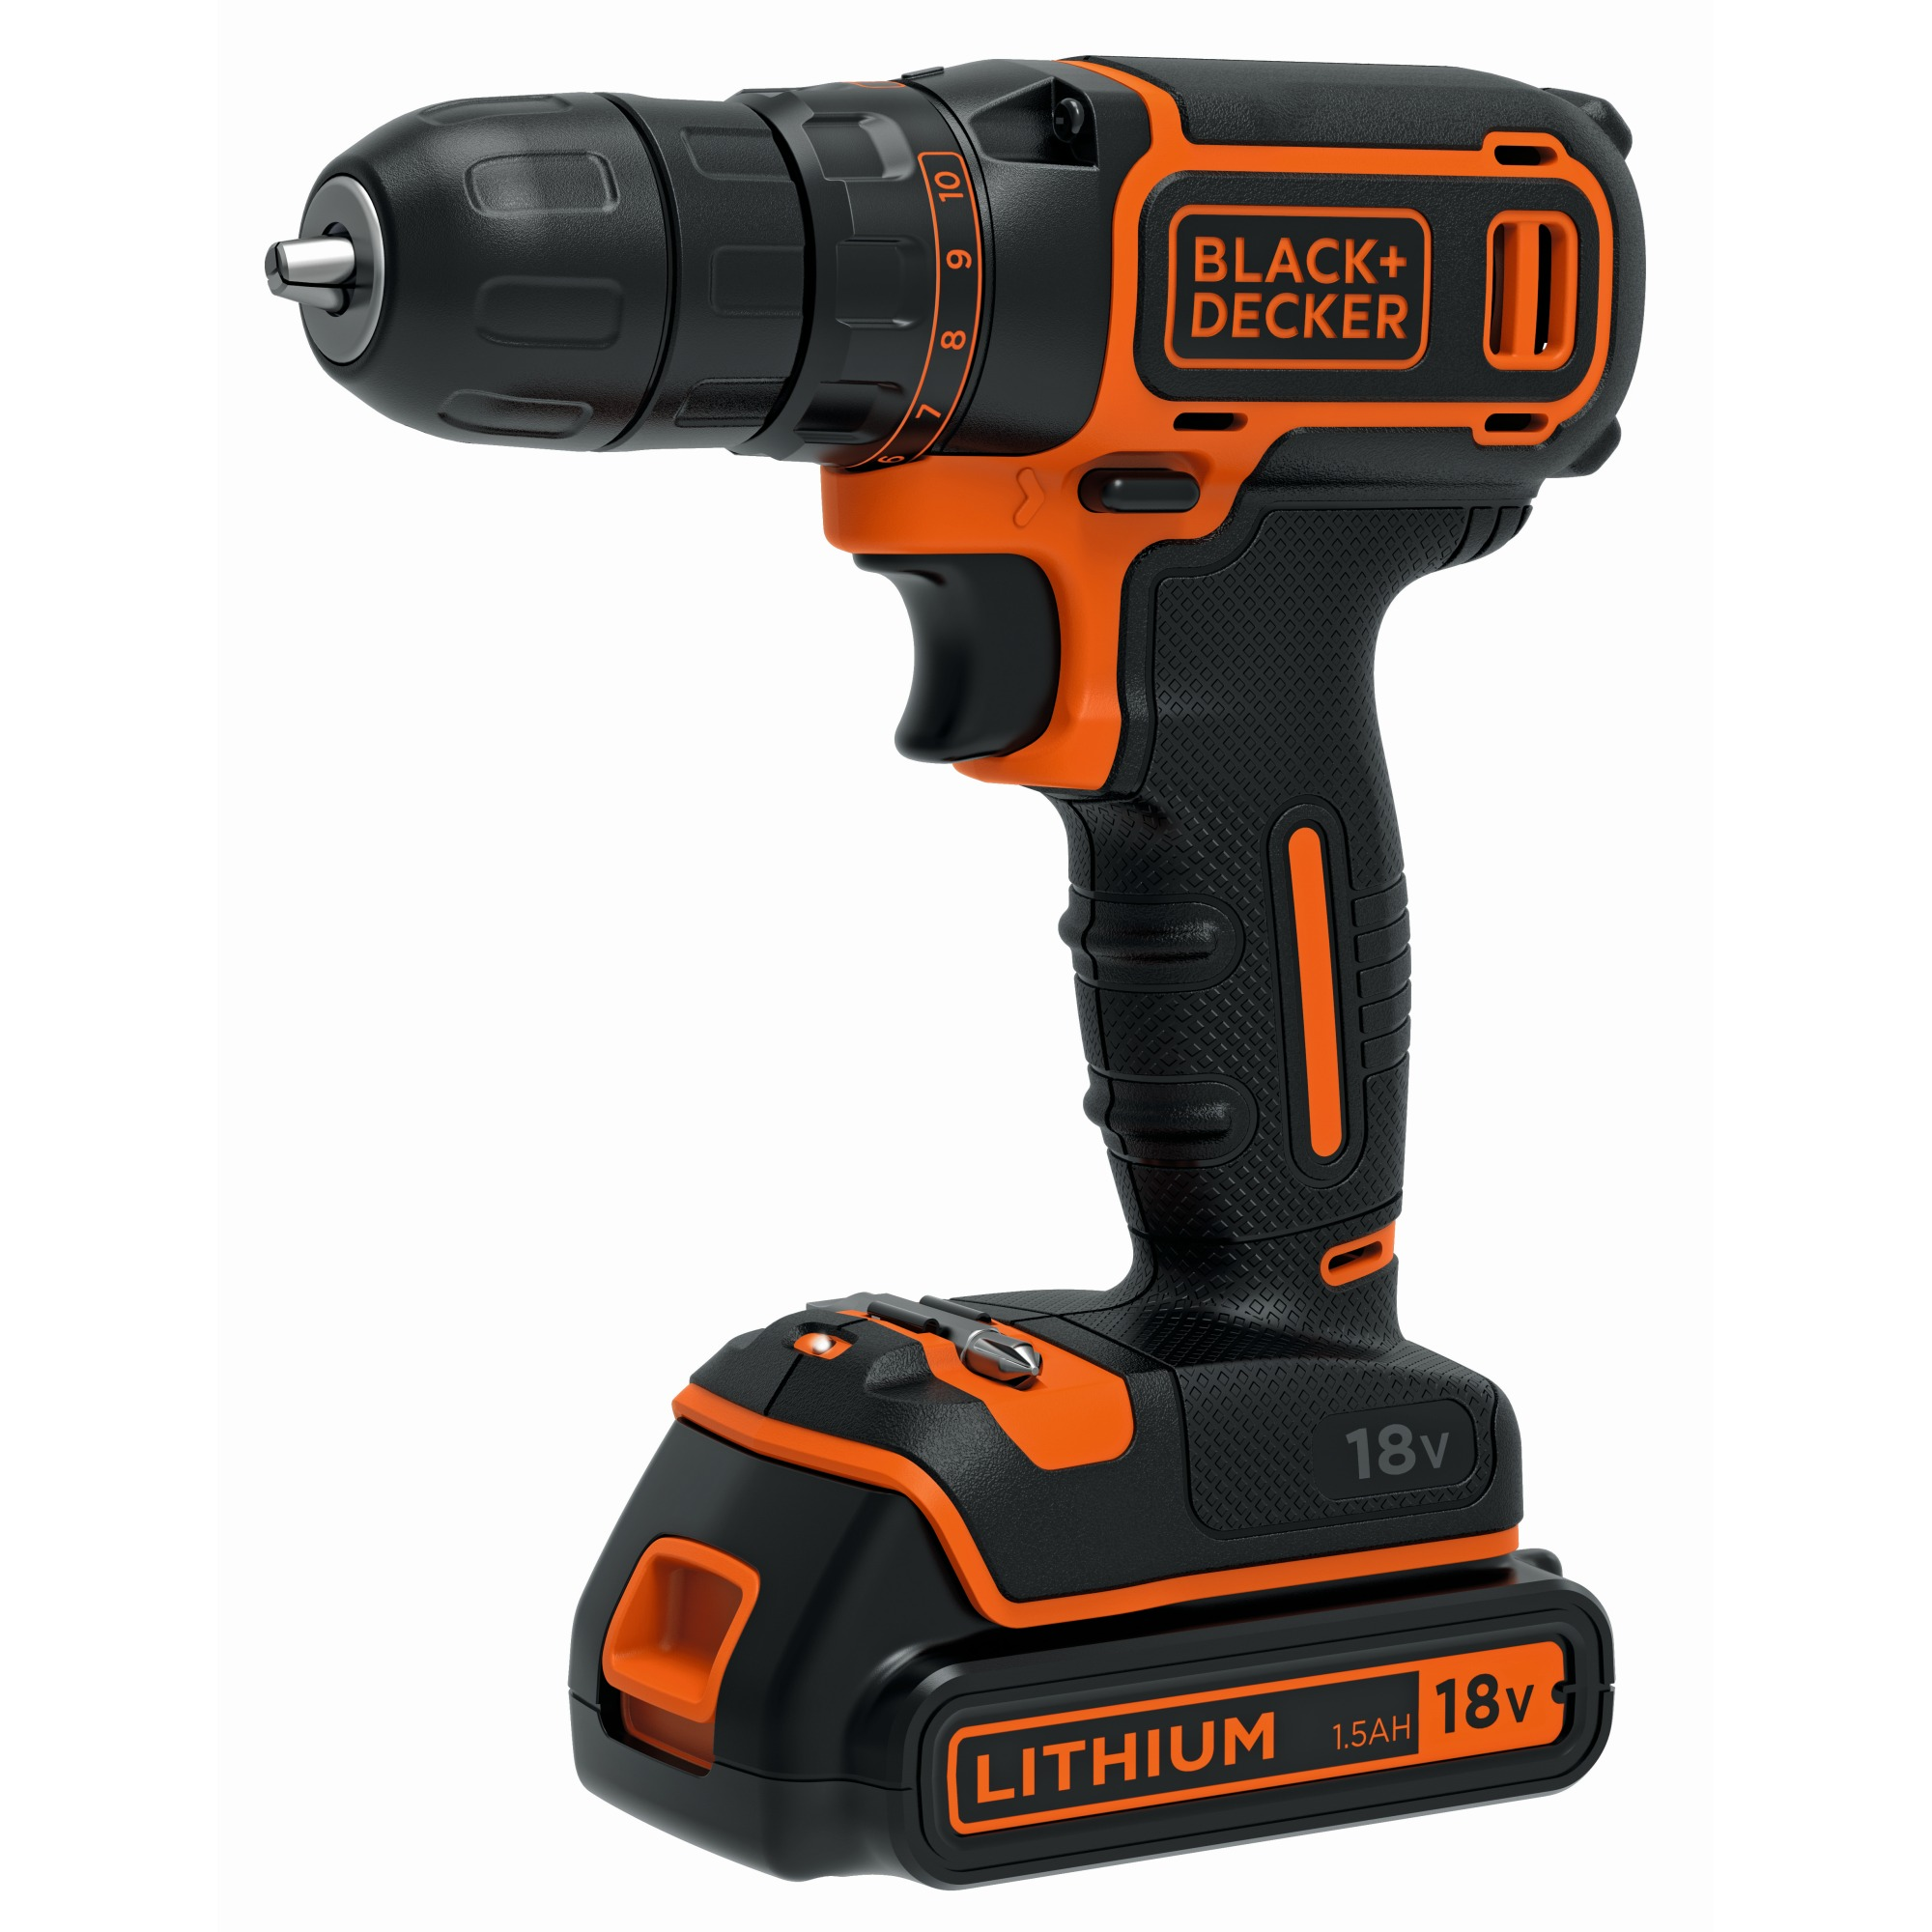 Accuboor Gamma Black And Decker Boormachine Kopen? | Online Internetwinkel